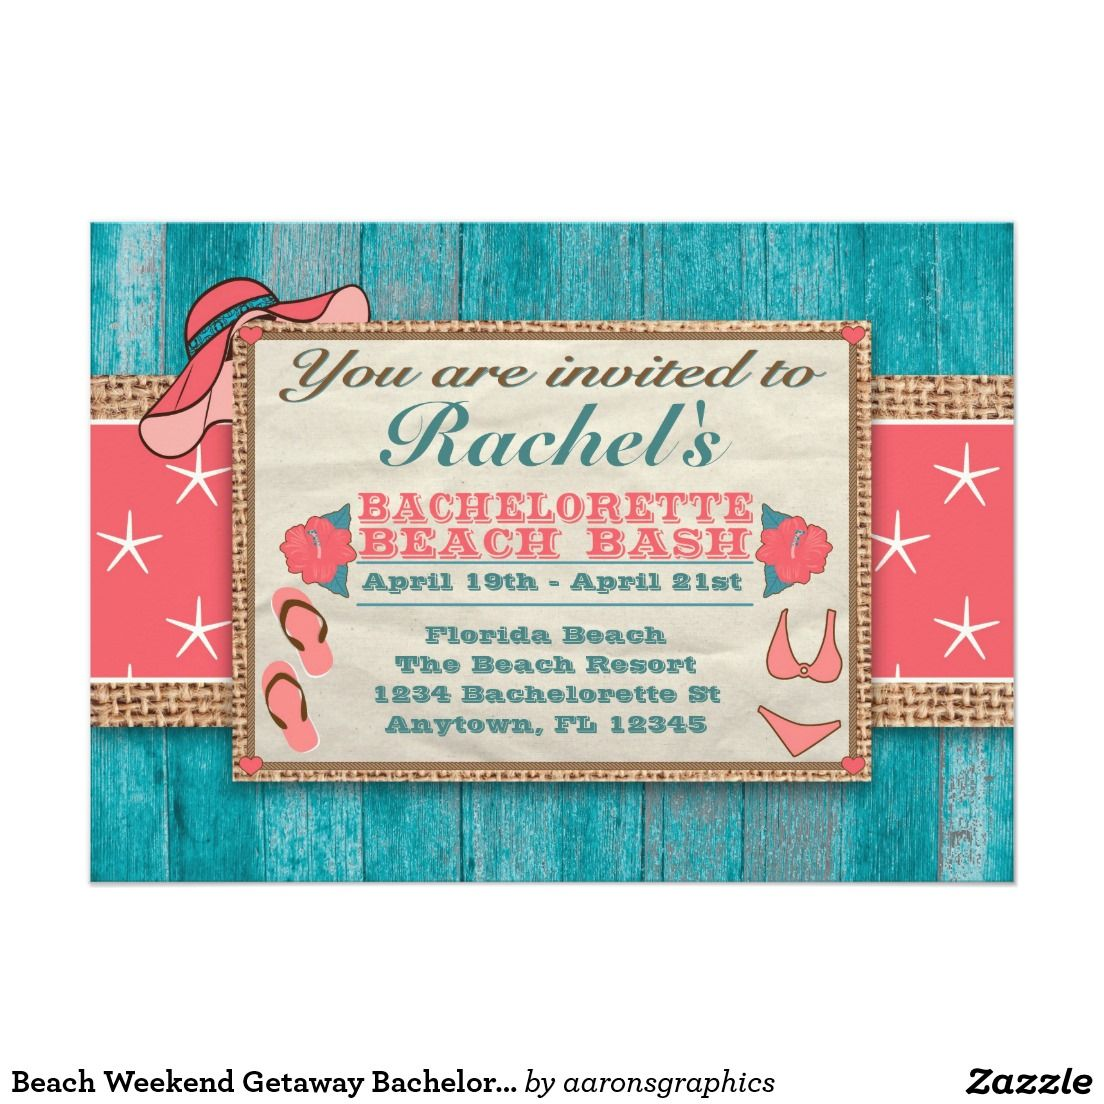 Beach Weekend Getaway Bachelorette Invitation SSM Bachelorette